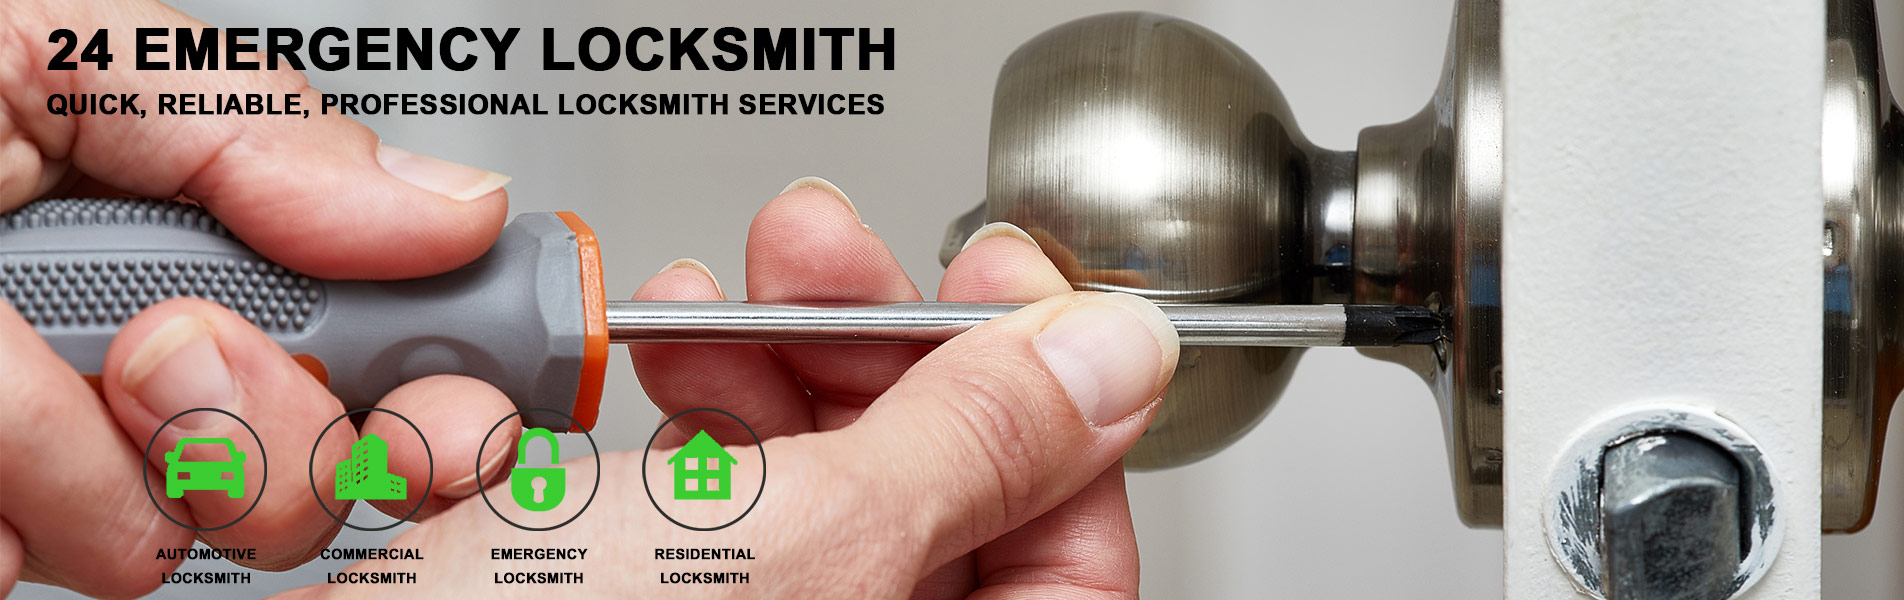 Expert Locksmith Services Sun City, CA 951-339-1479